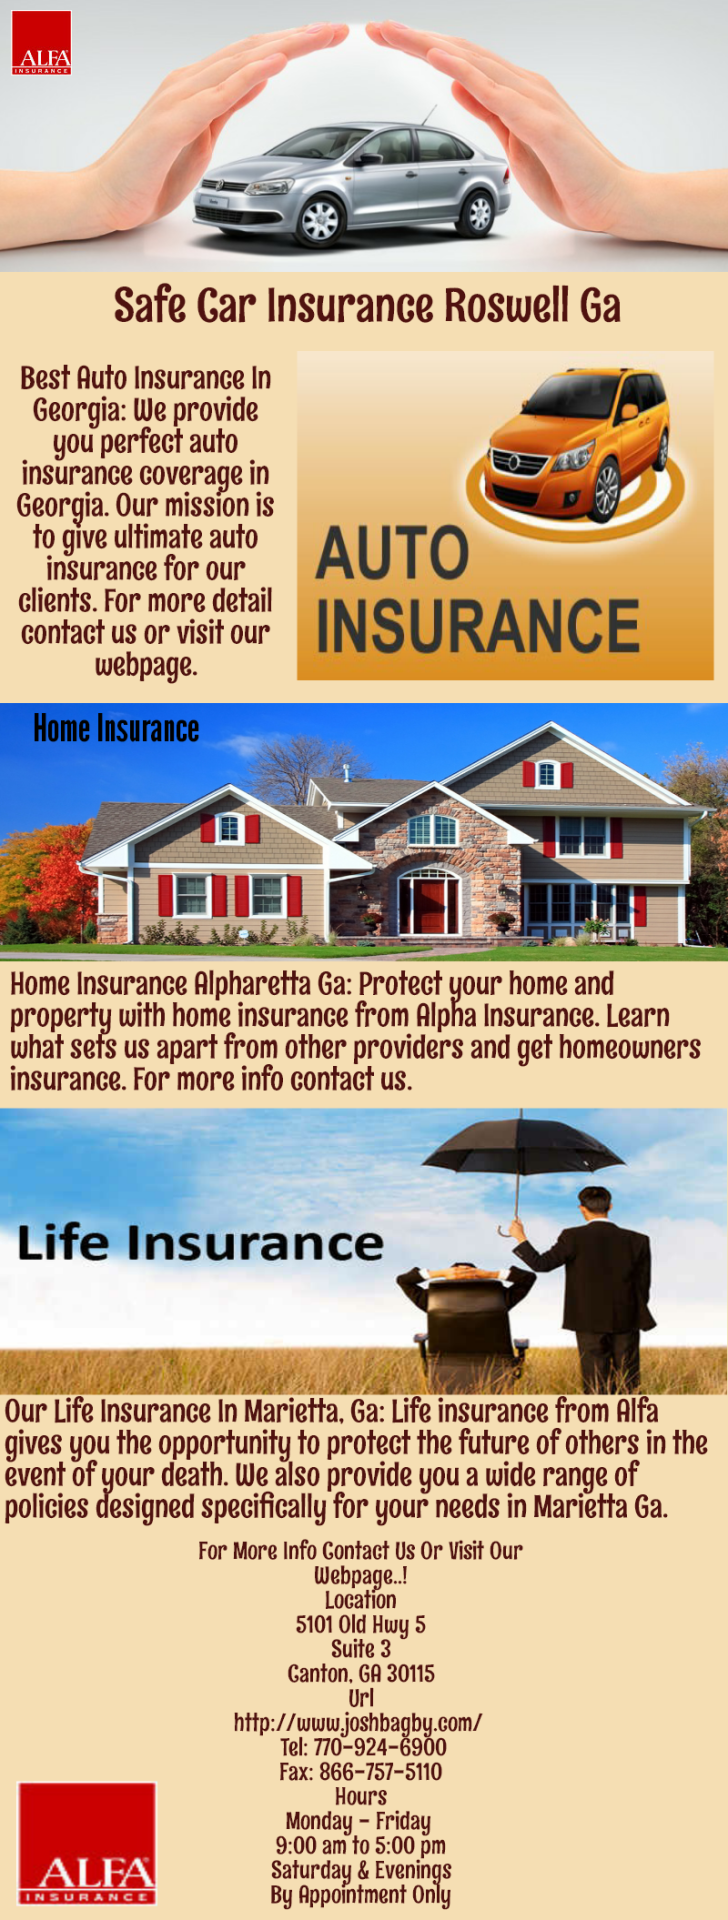 Alfa Insurance puts you more at ease by providing safe and